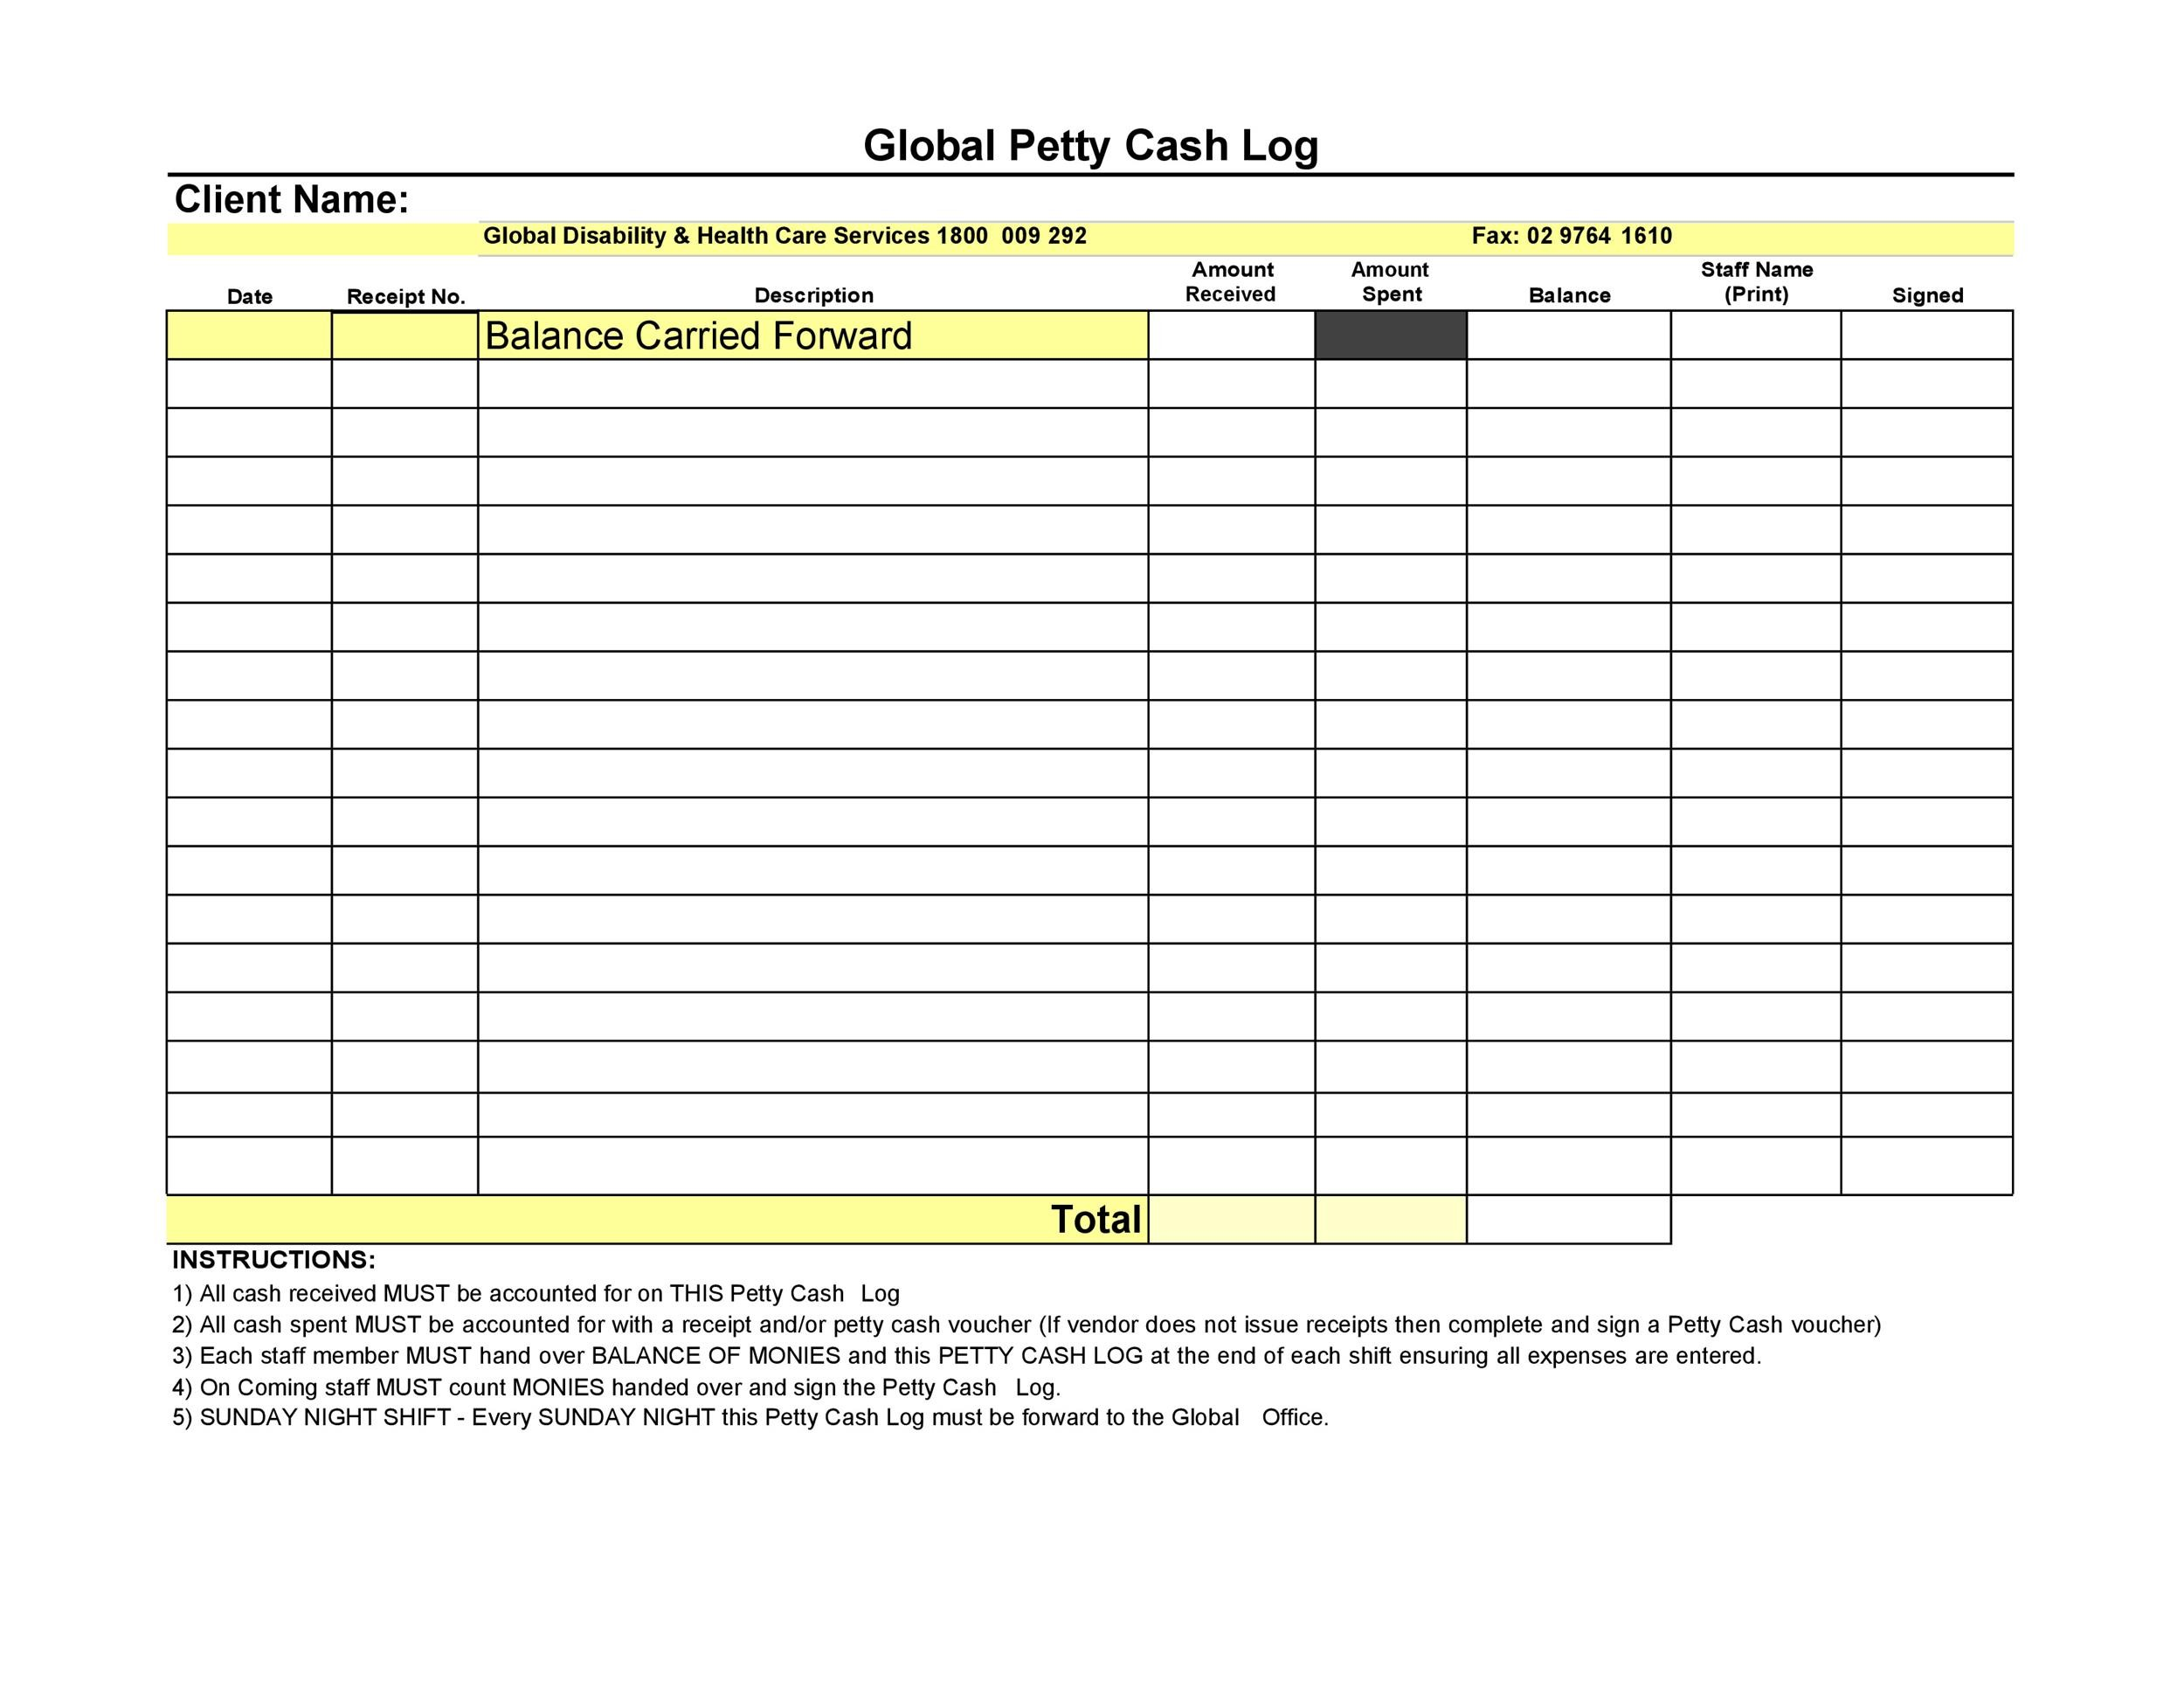 Petty Cash Log Templates  Forms Excel Pdf Word  Template Lab